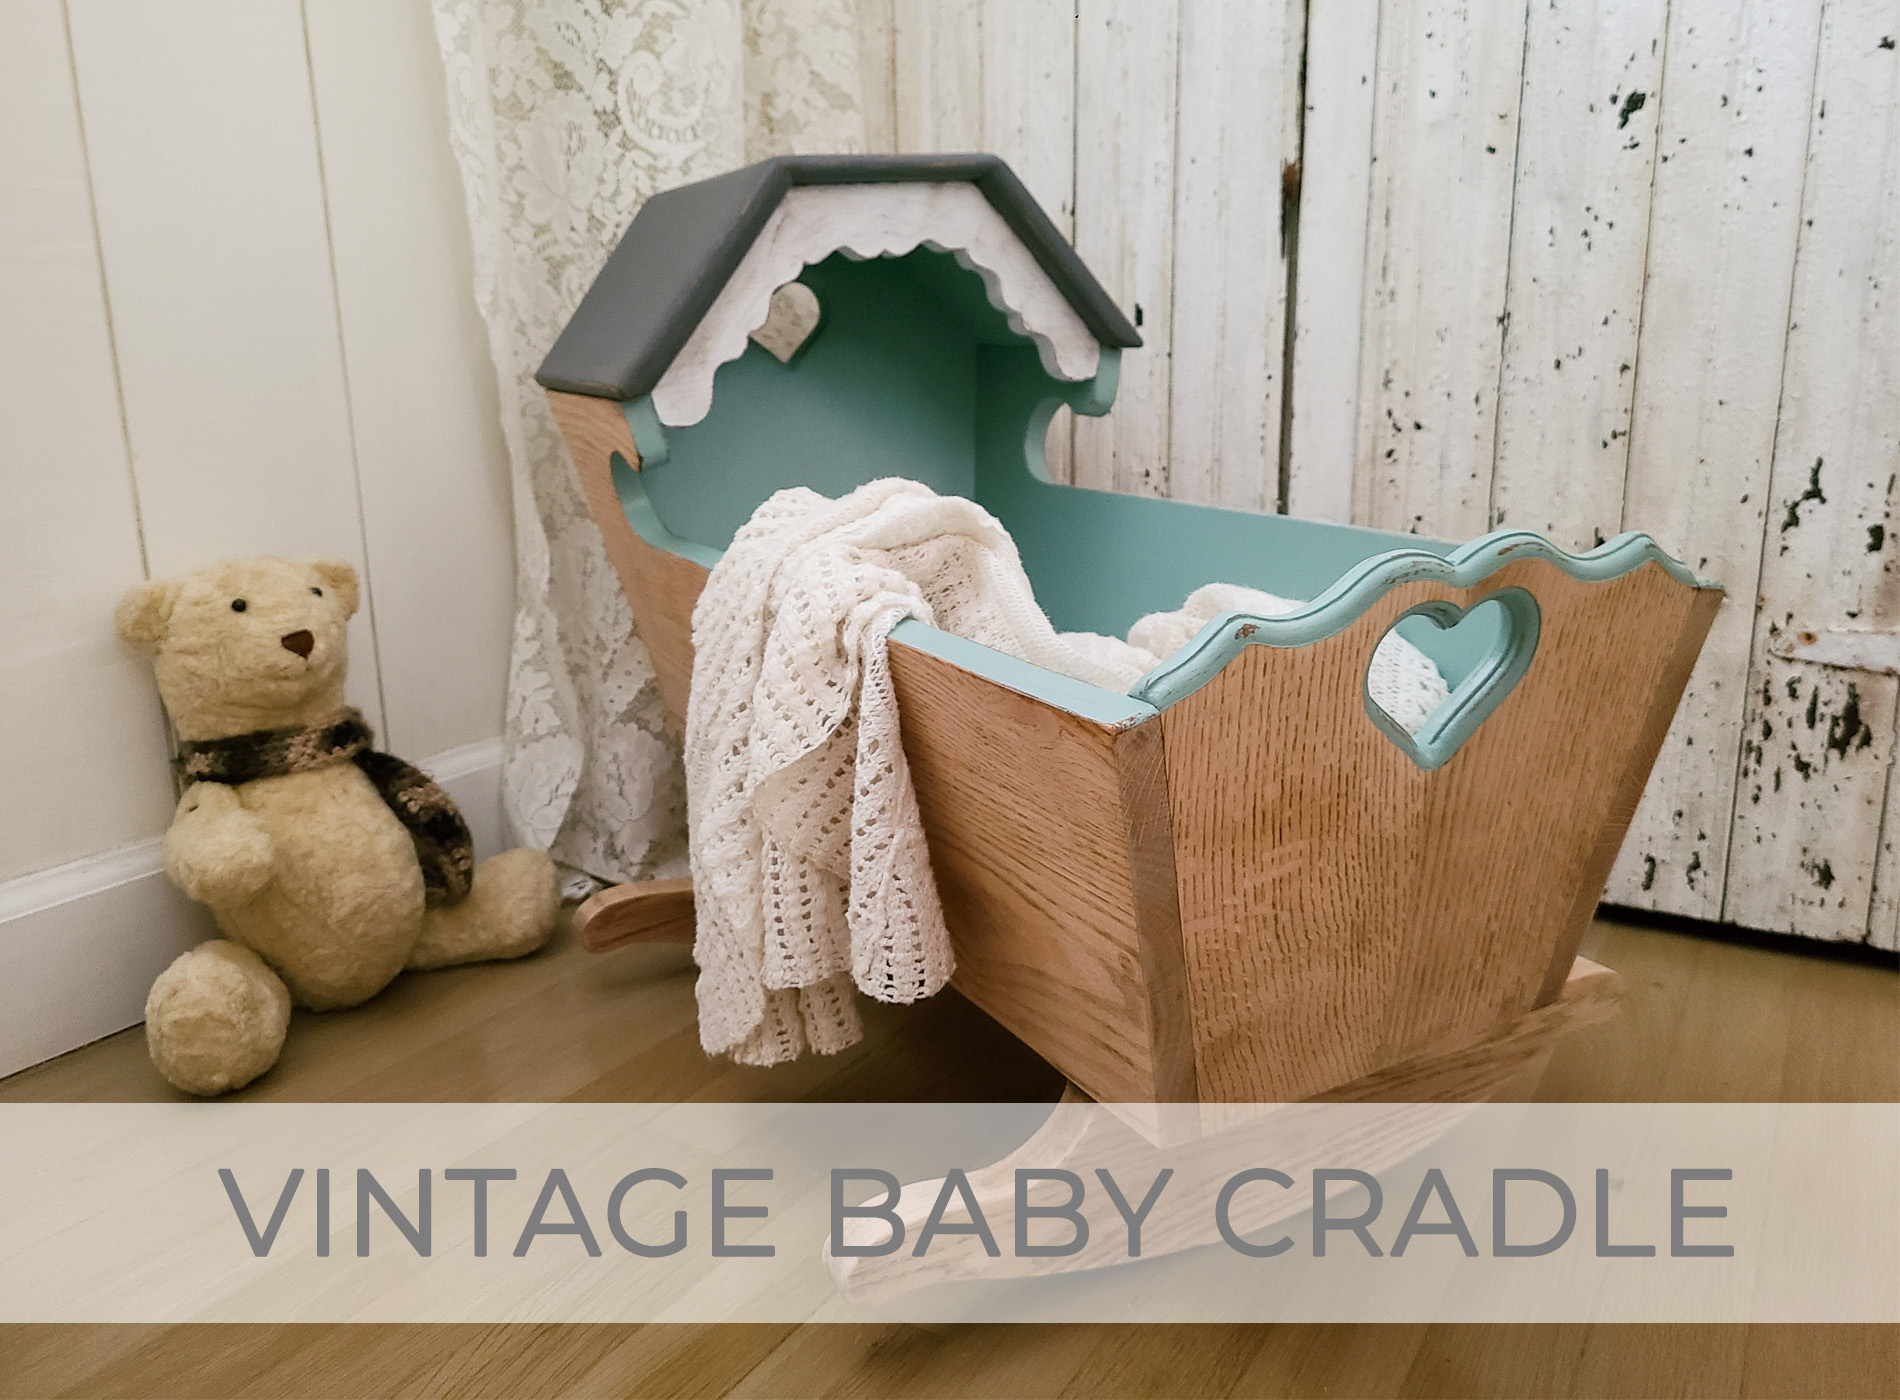 Vintage Baby Cradle Makeover by Larissa of Prodigal Pieces | prodigalpieces.com #prodigalpieces